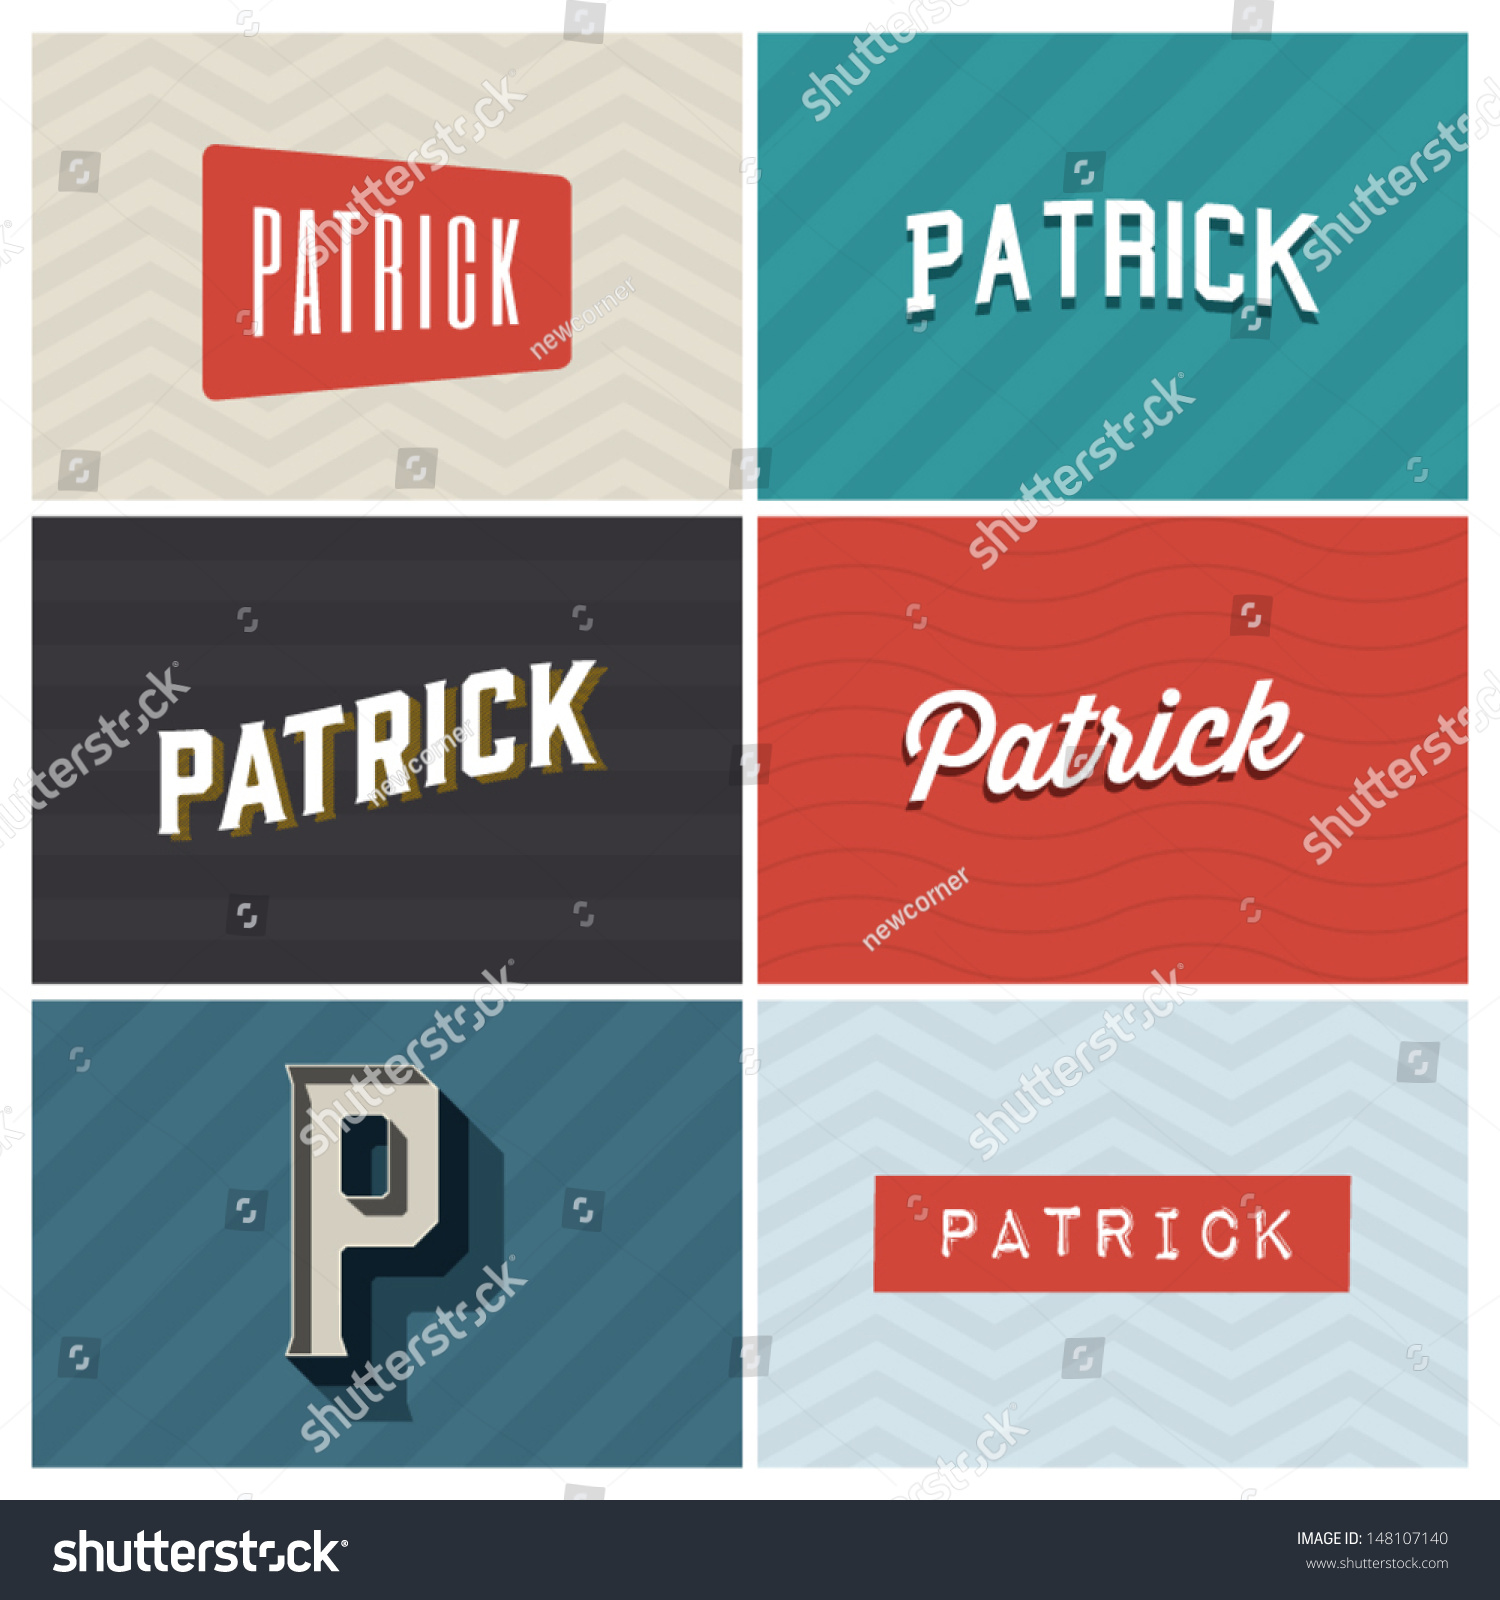 Name Patrick Graphic Design Elements